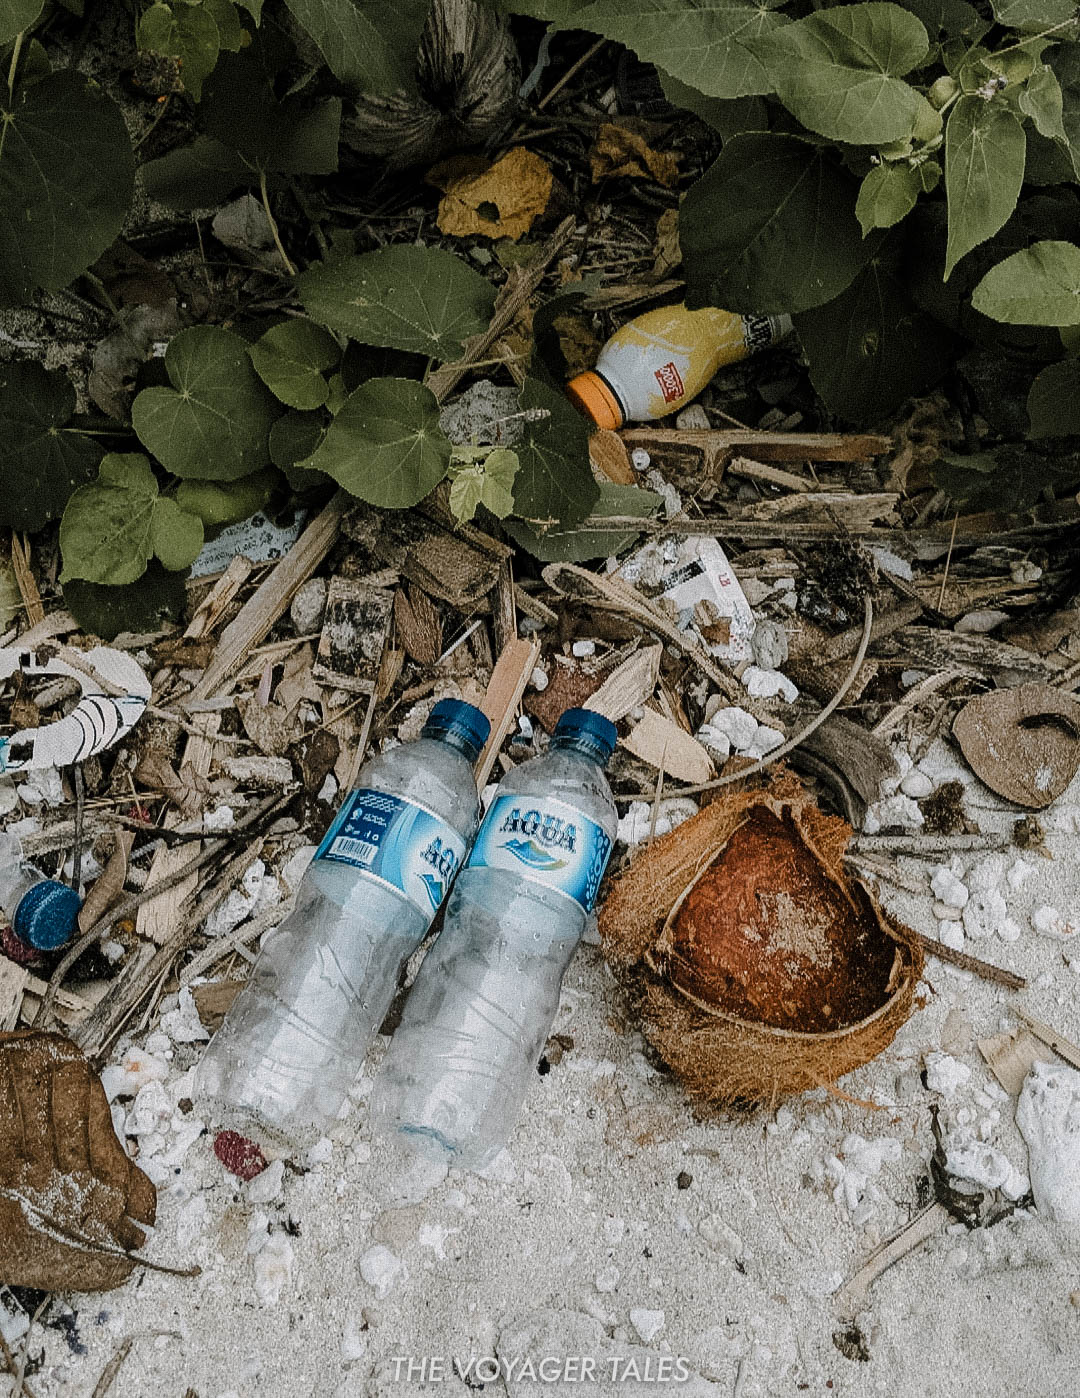 Bali plastic pollution.jpg